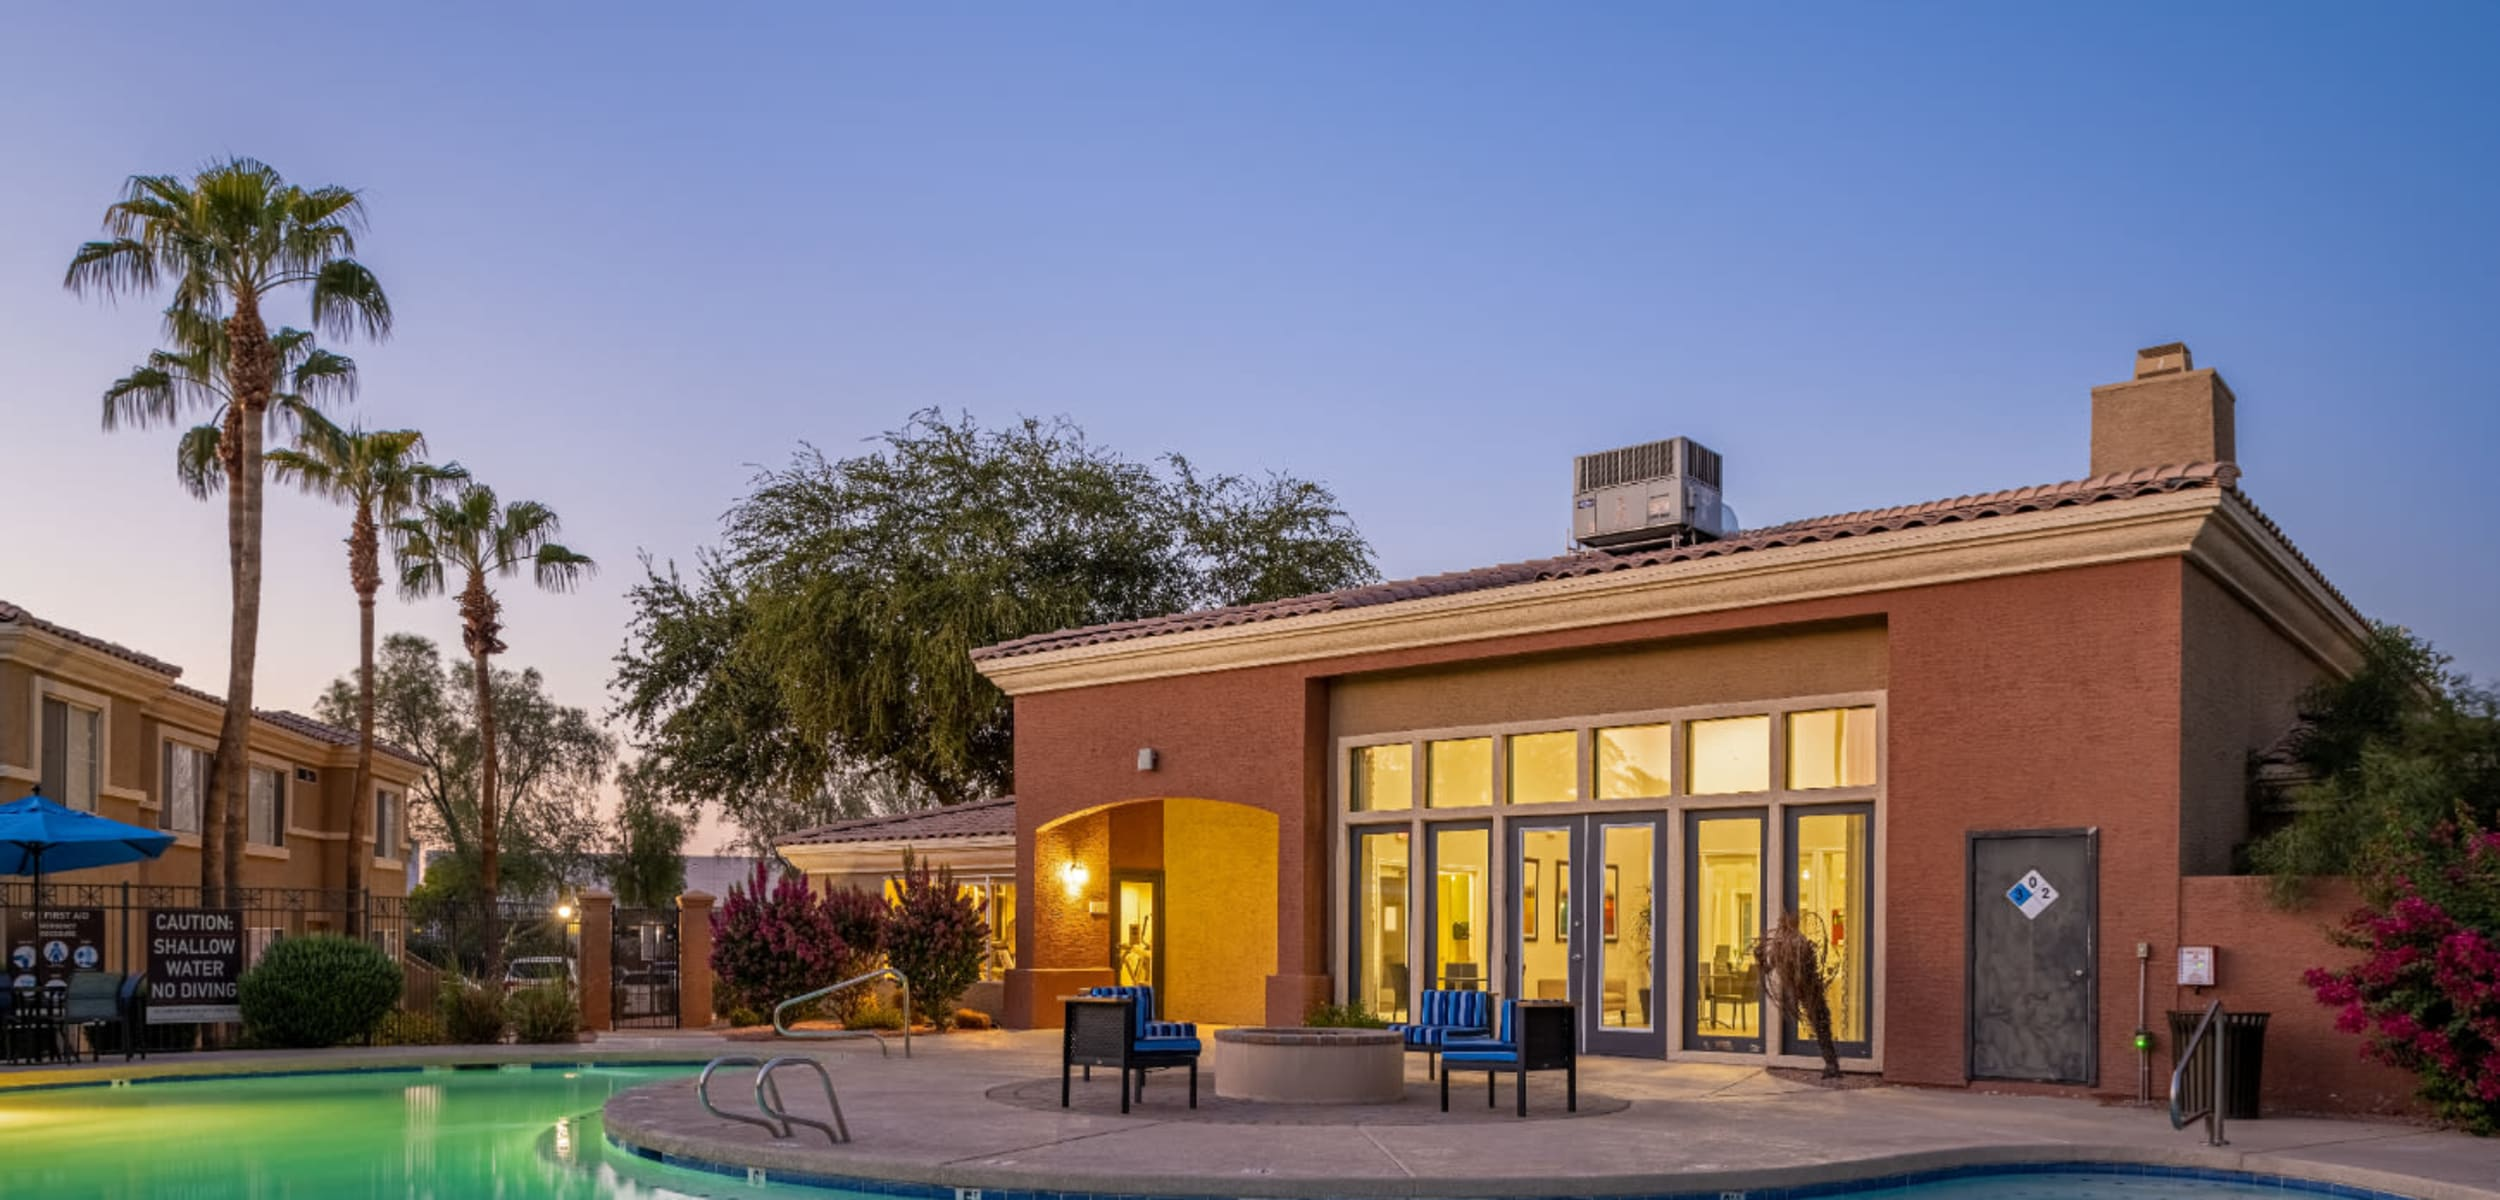 Clubhouse and pool at sunset at Alante at the Islands in Chandler Arizona,